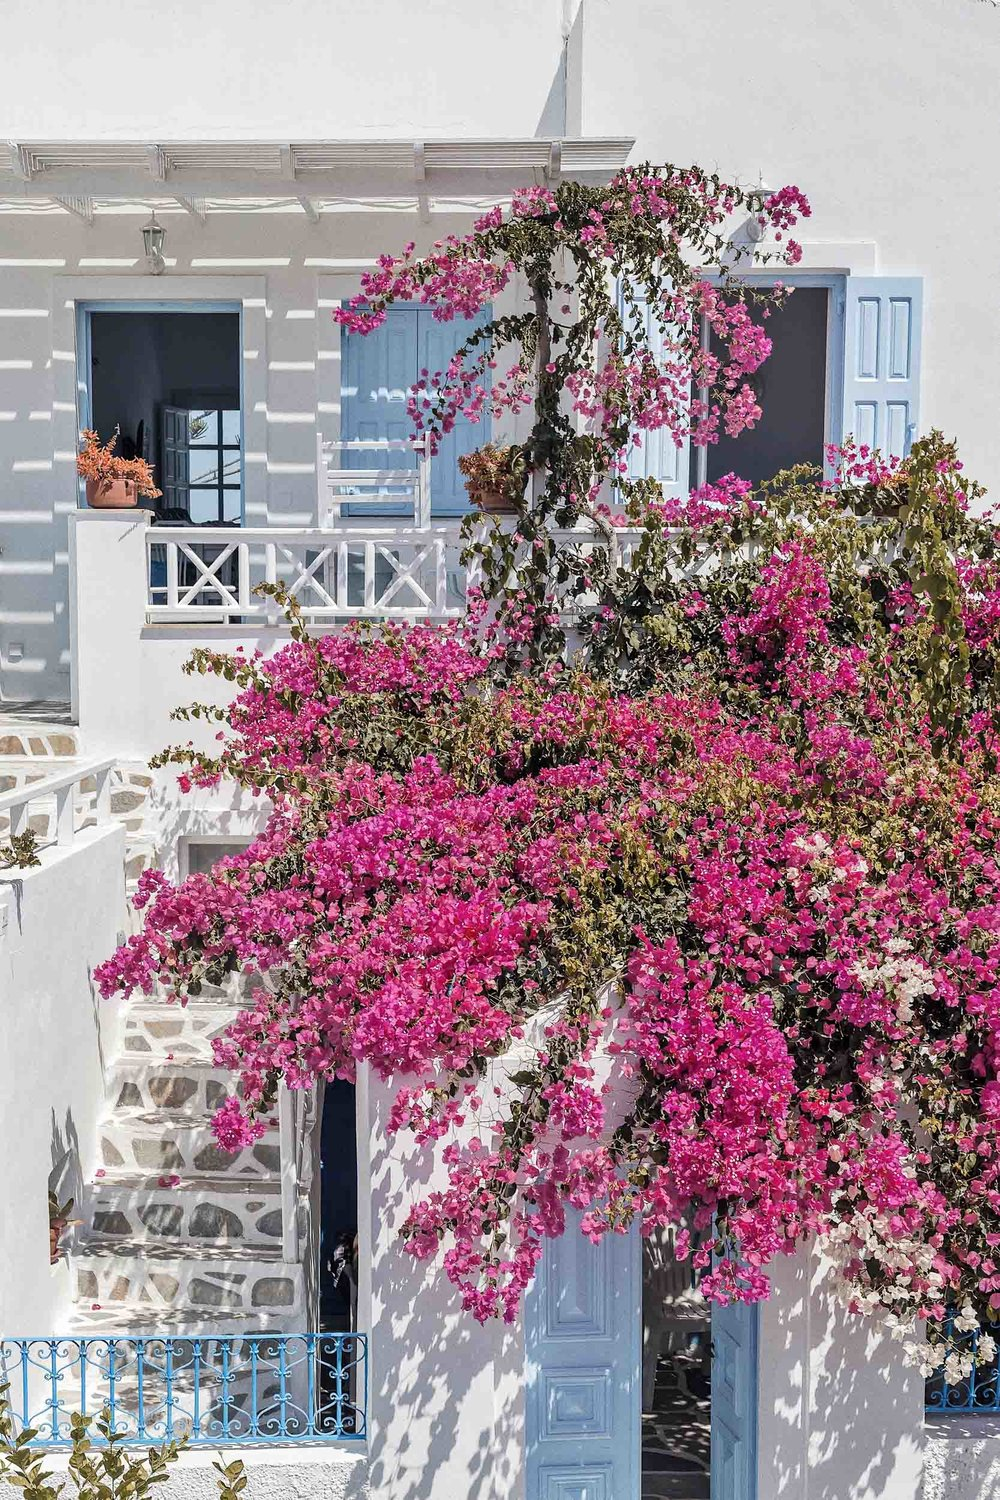 The best place to stay in Santorini: in the village of Oia in one of these Airbnb Santorini rentals